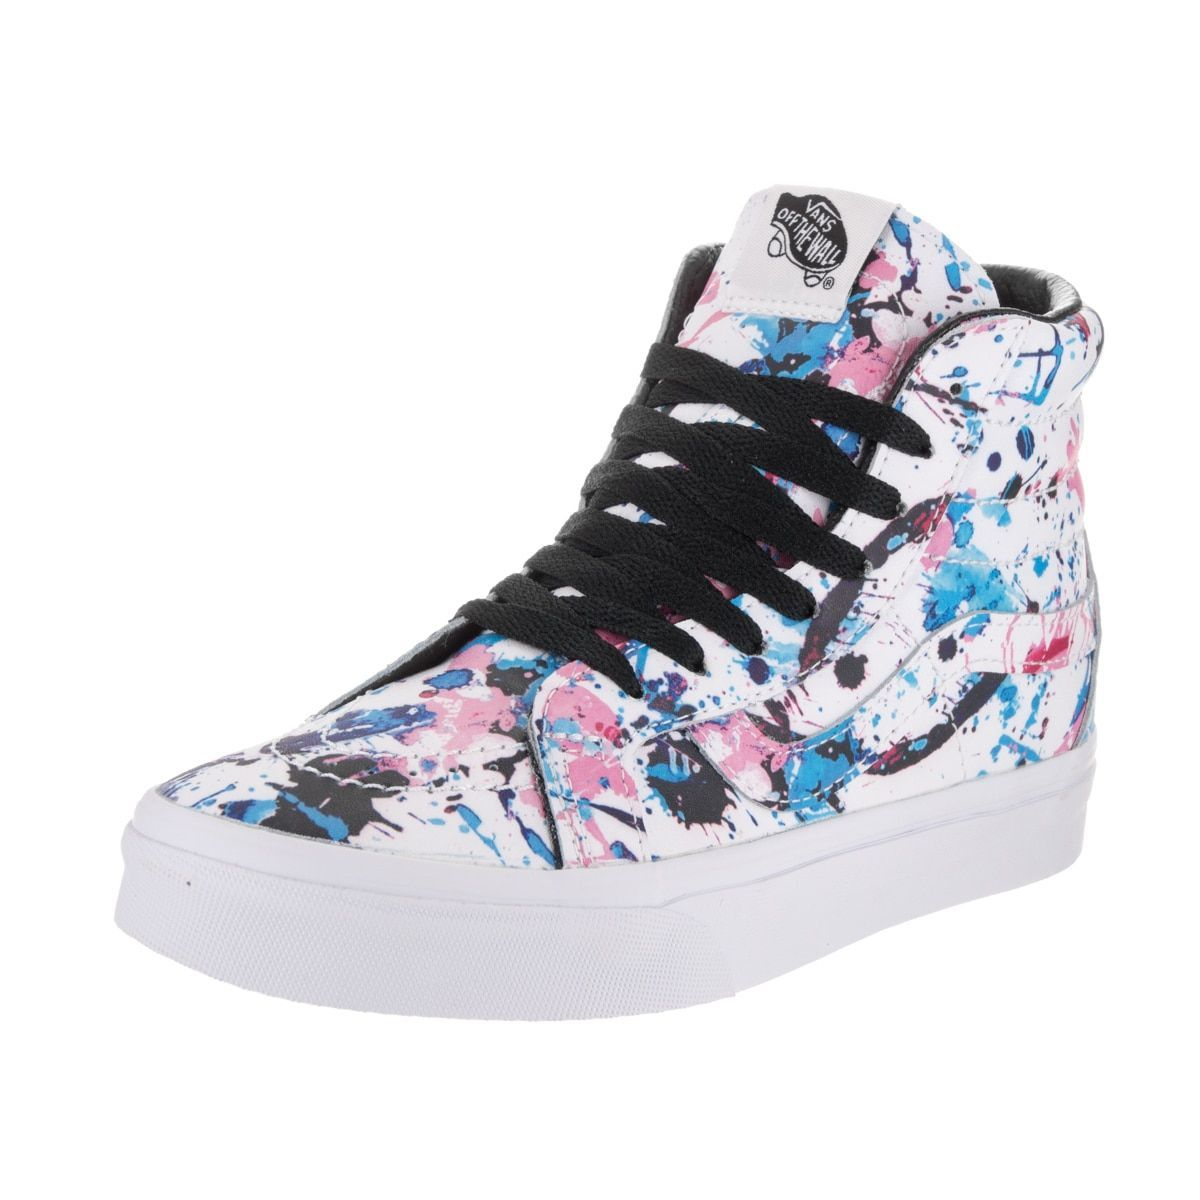 f2f2a08e30d Create retro appeal while at the park with these Vans Sk8-Hi reissue skate  shoes designed for unisex wear. A unique paint-splatter motif brings a bit  of ...